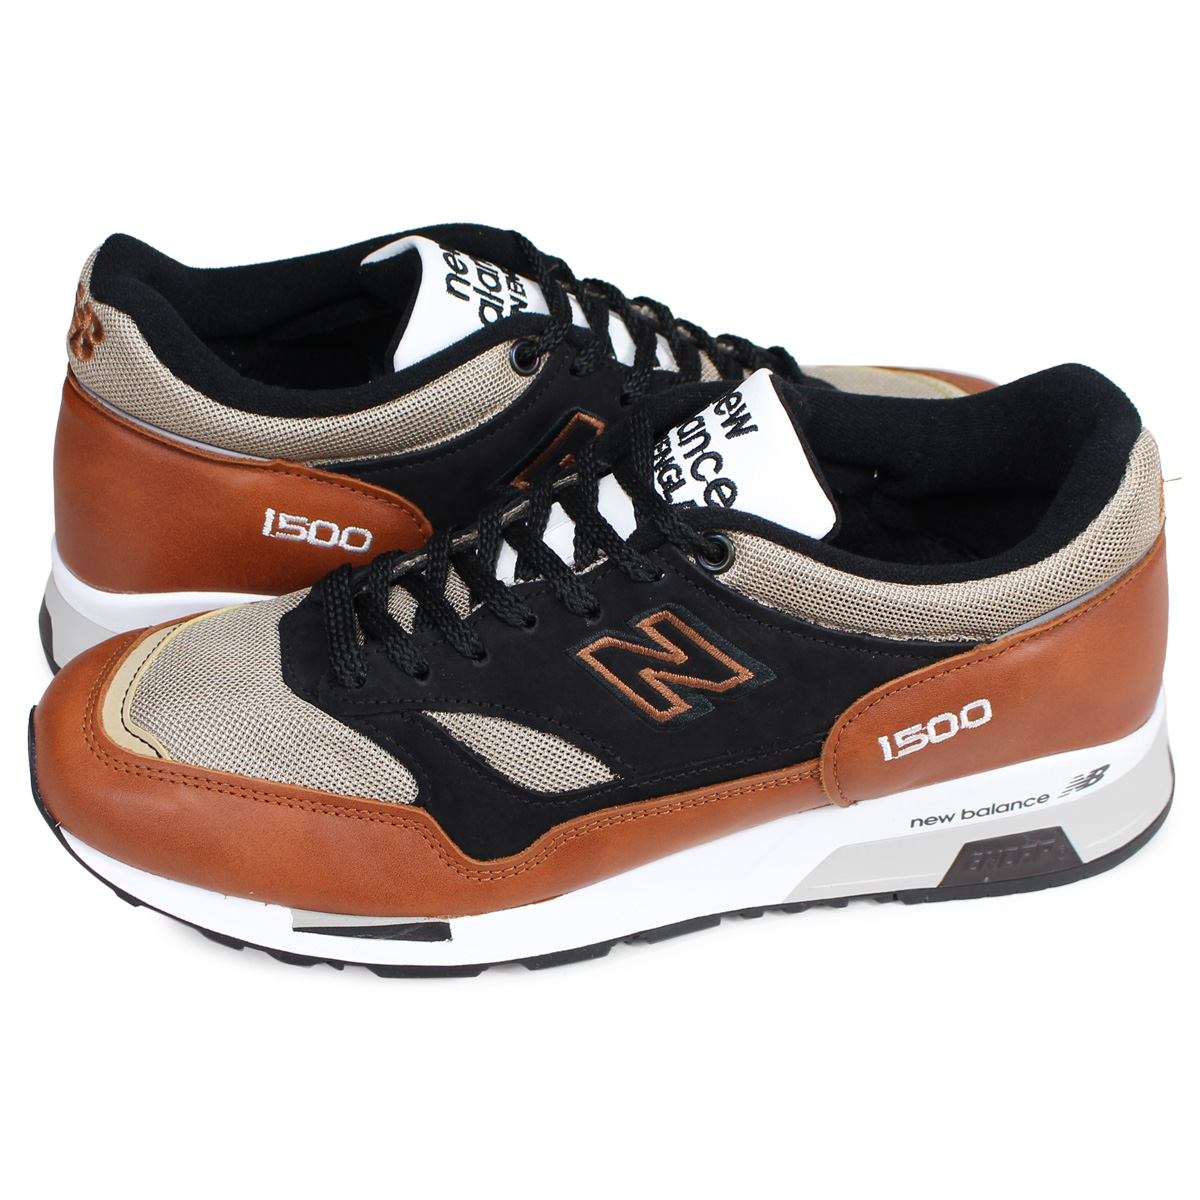 best service a72ef 88302 new balance M1500TBT New Balance 1500 sneakers men D Wise MADE IN UK brown